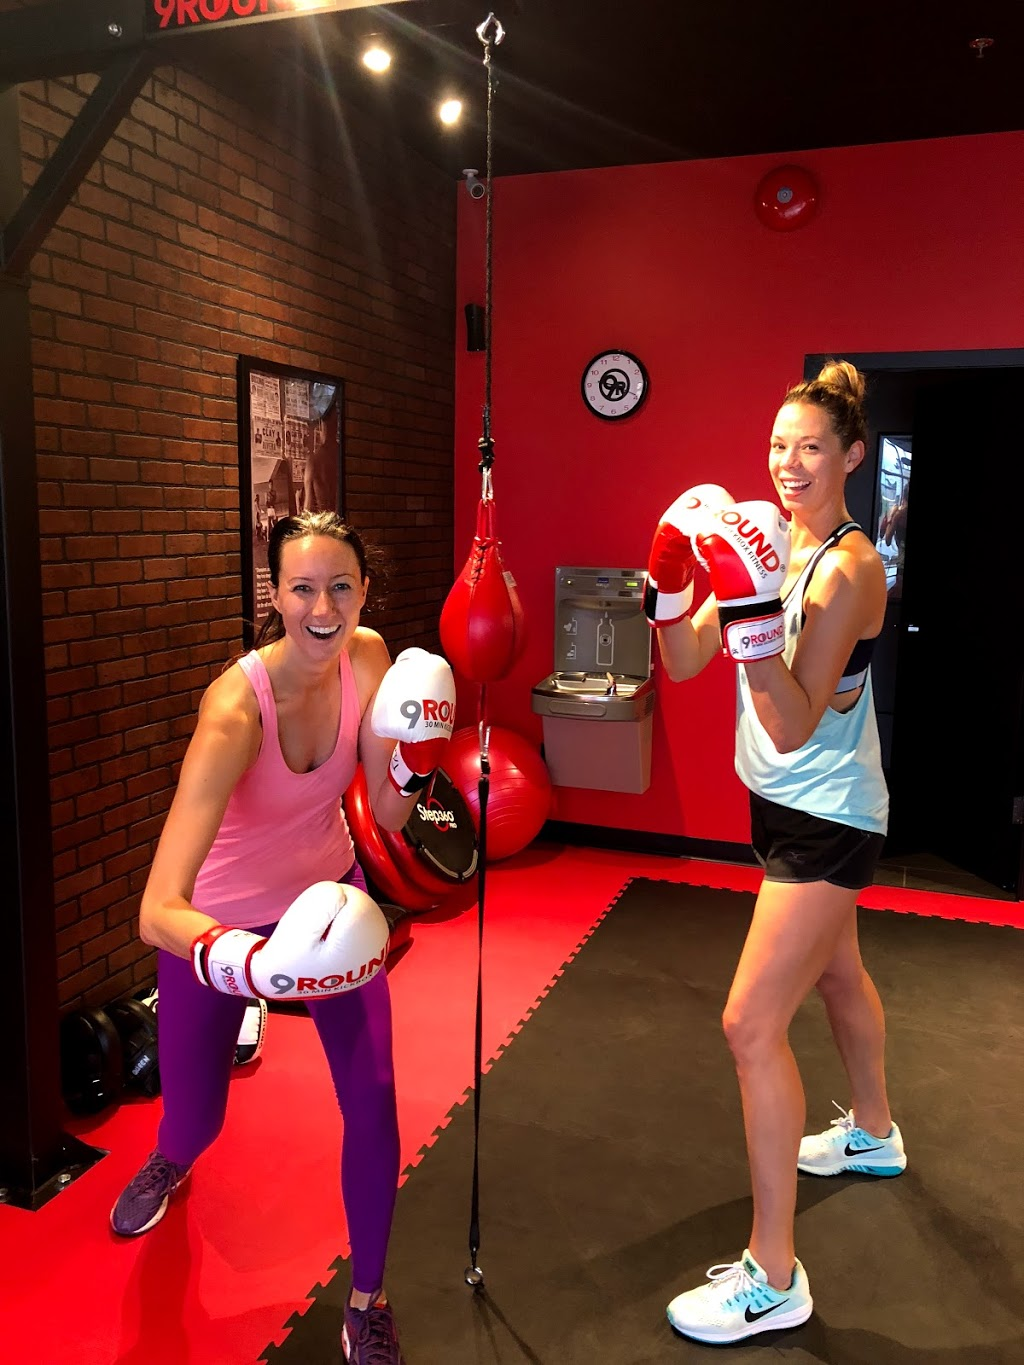 9Round West Kelowna | gym | 2127 Louie Dr #106, Westbank, BC V4T 3E6, Canada | 2507079993 OR +1 250-707-9993